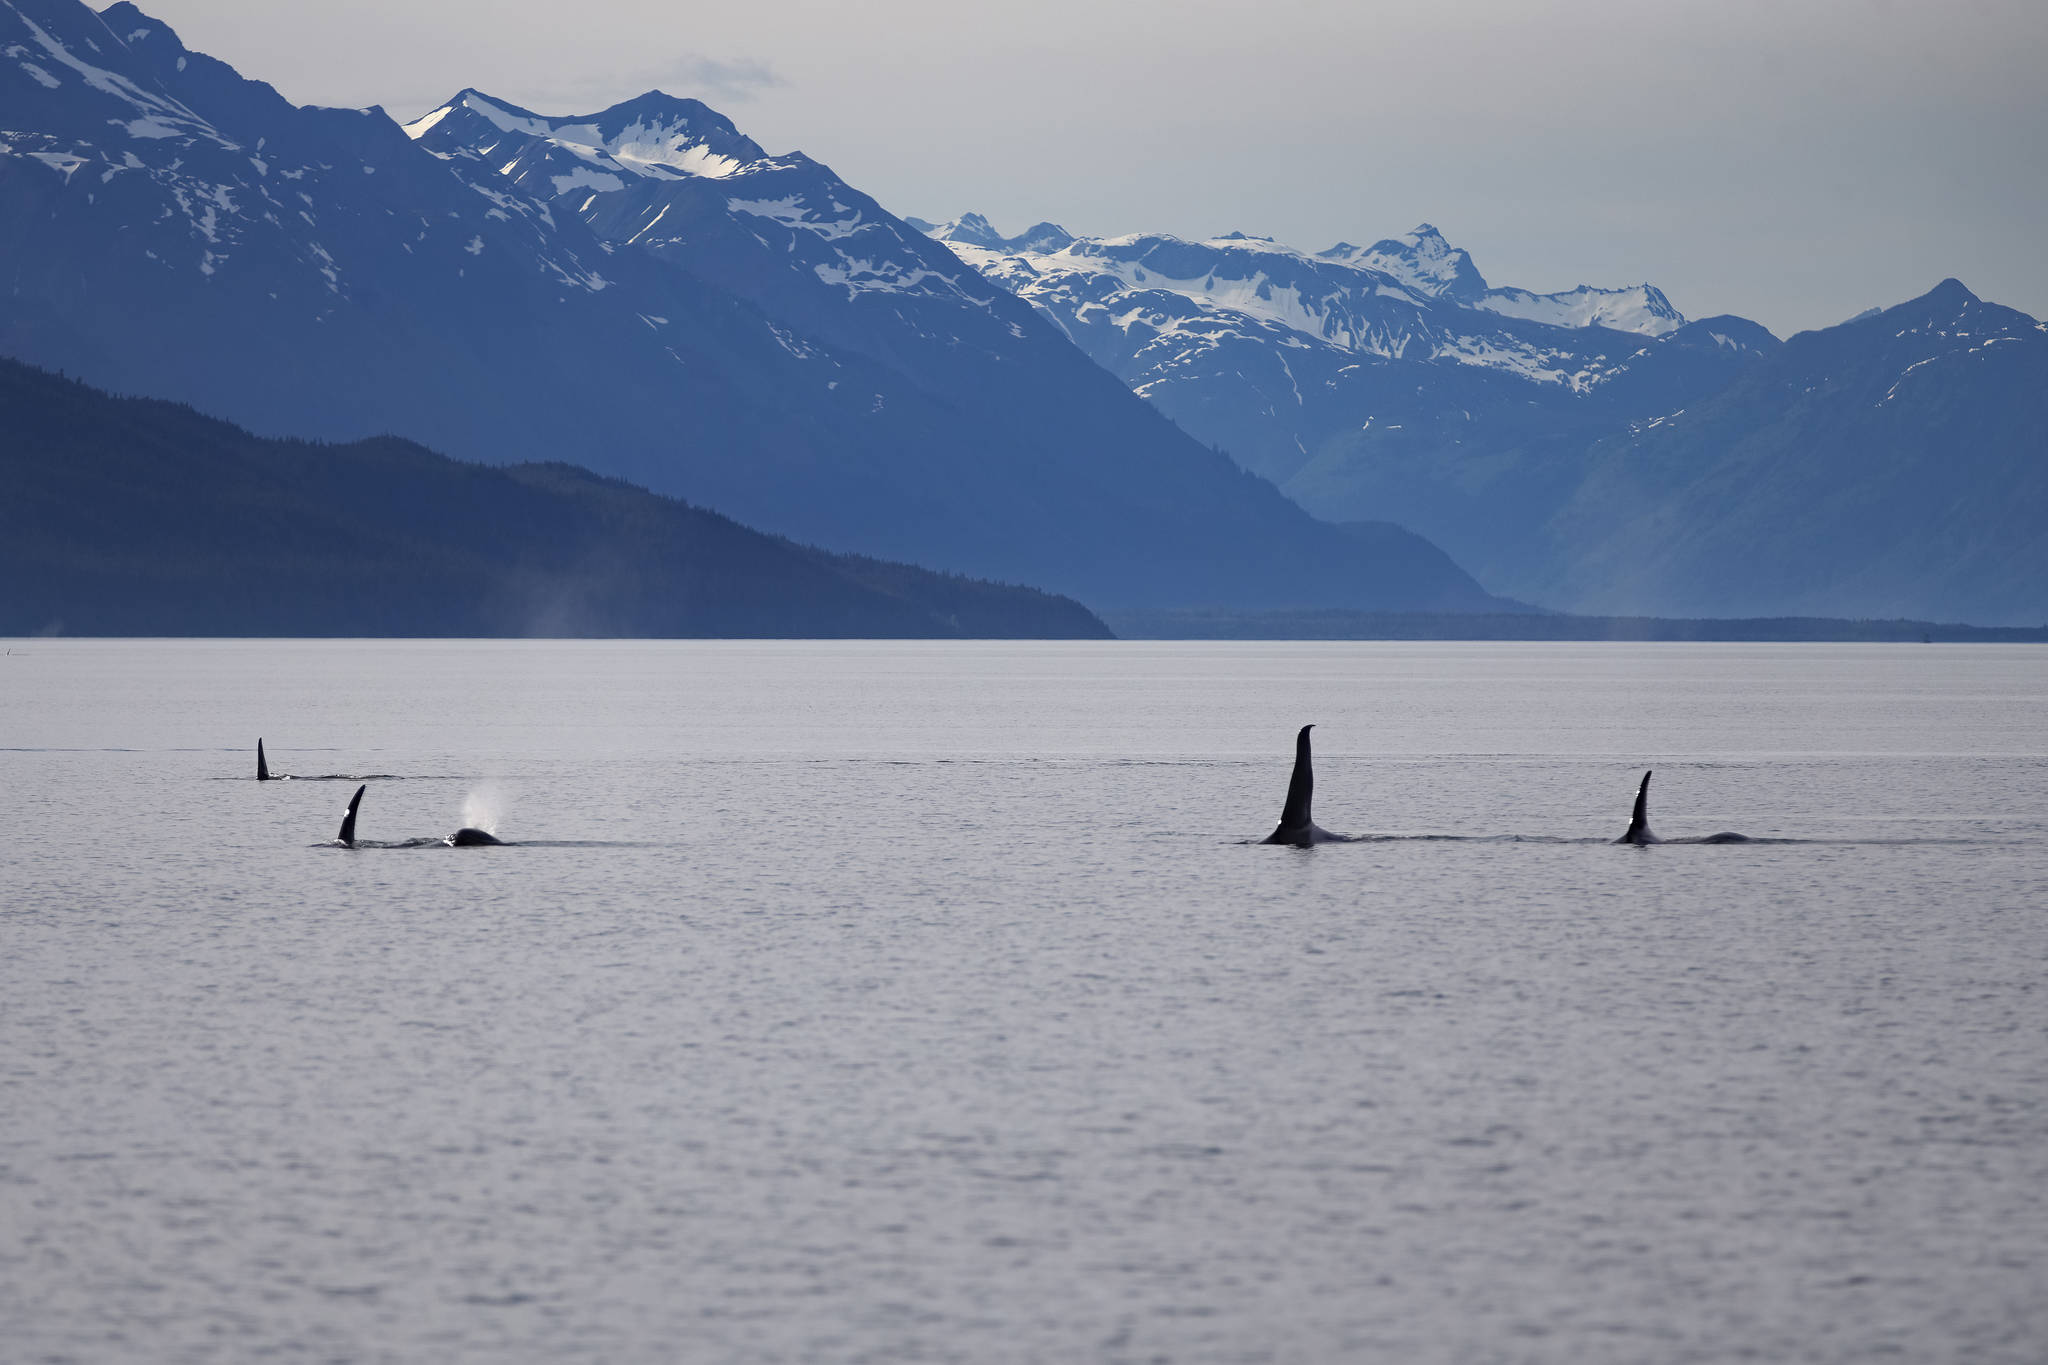 This June 18 photo shows an orca pod. It was taken on the Alaska Fjordlines from Juneau to Haines. (Courtesy Photo / John Riffey)